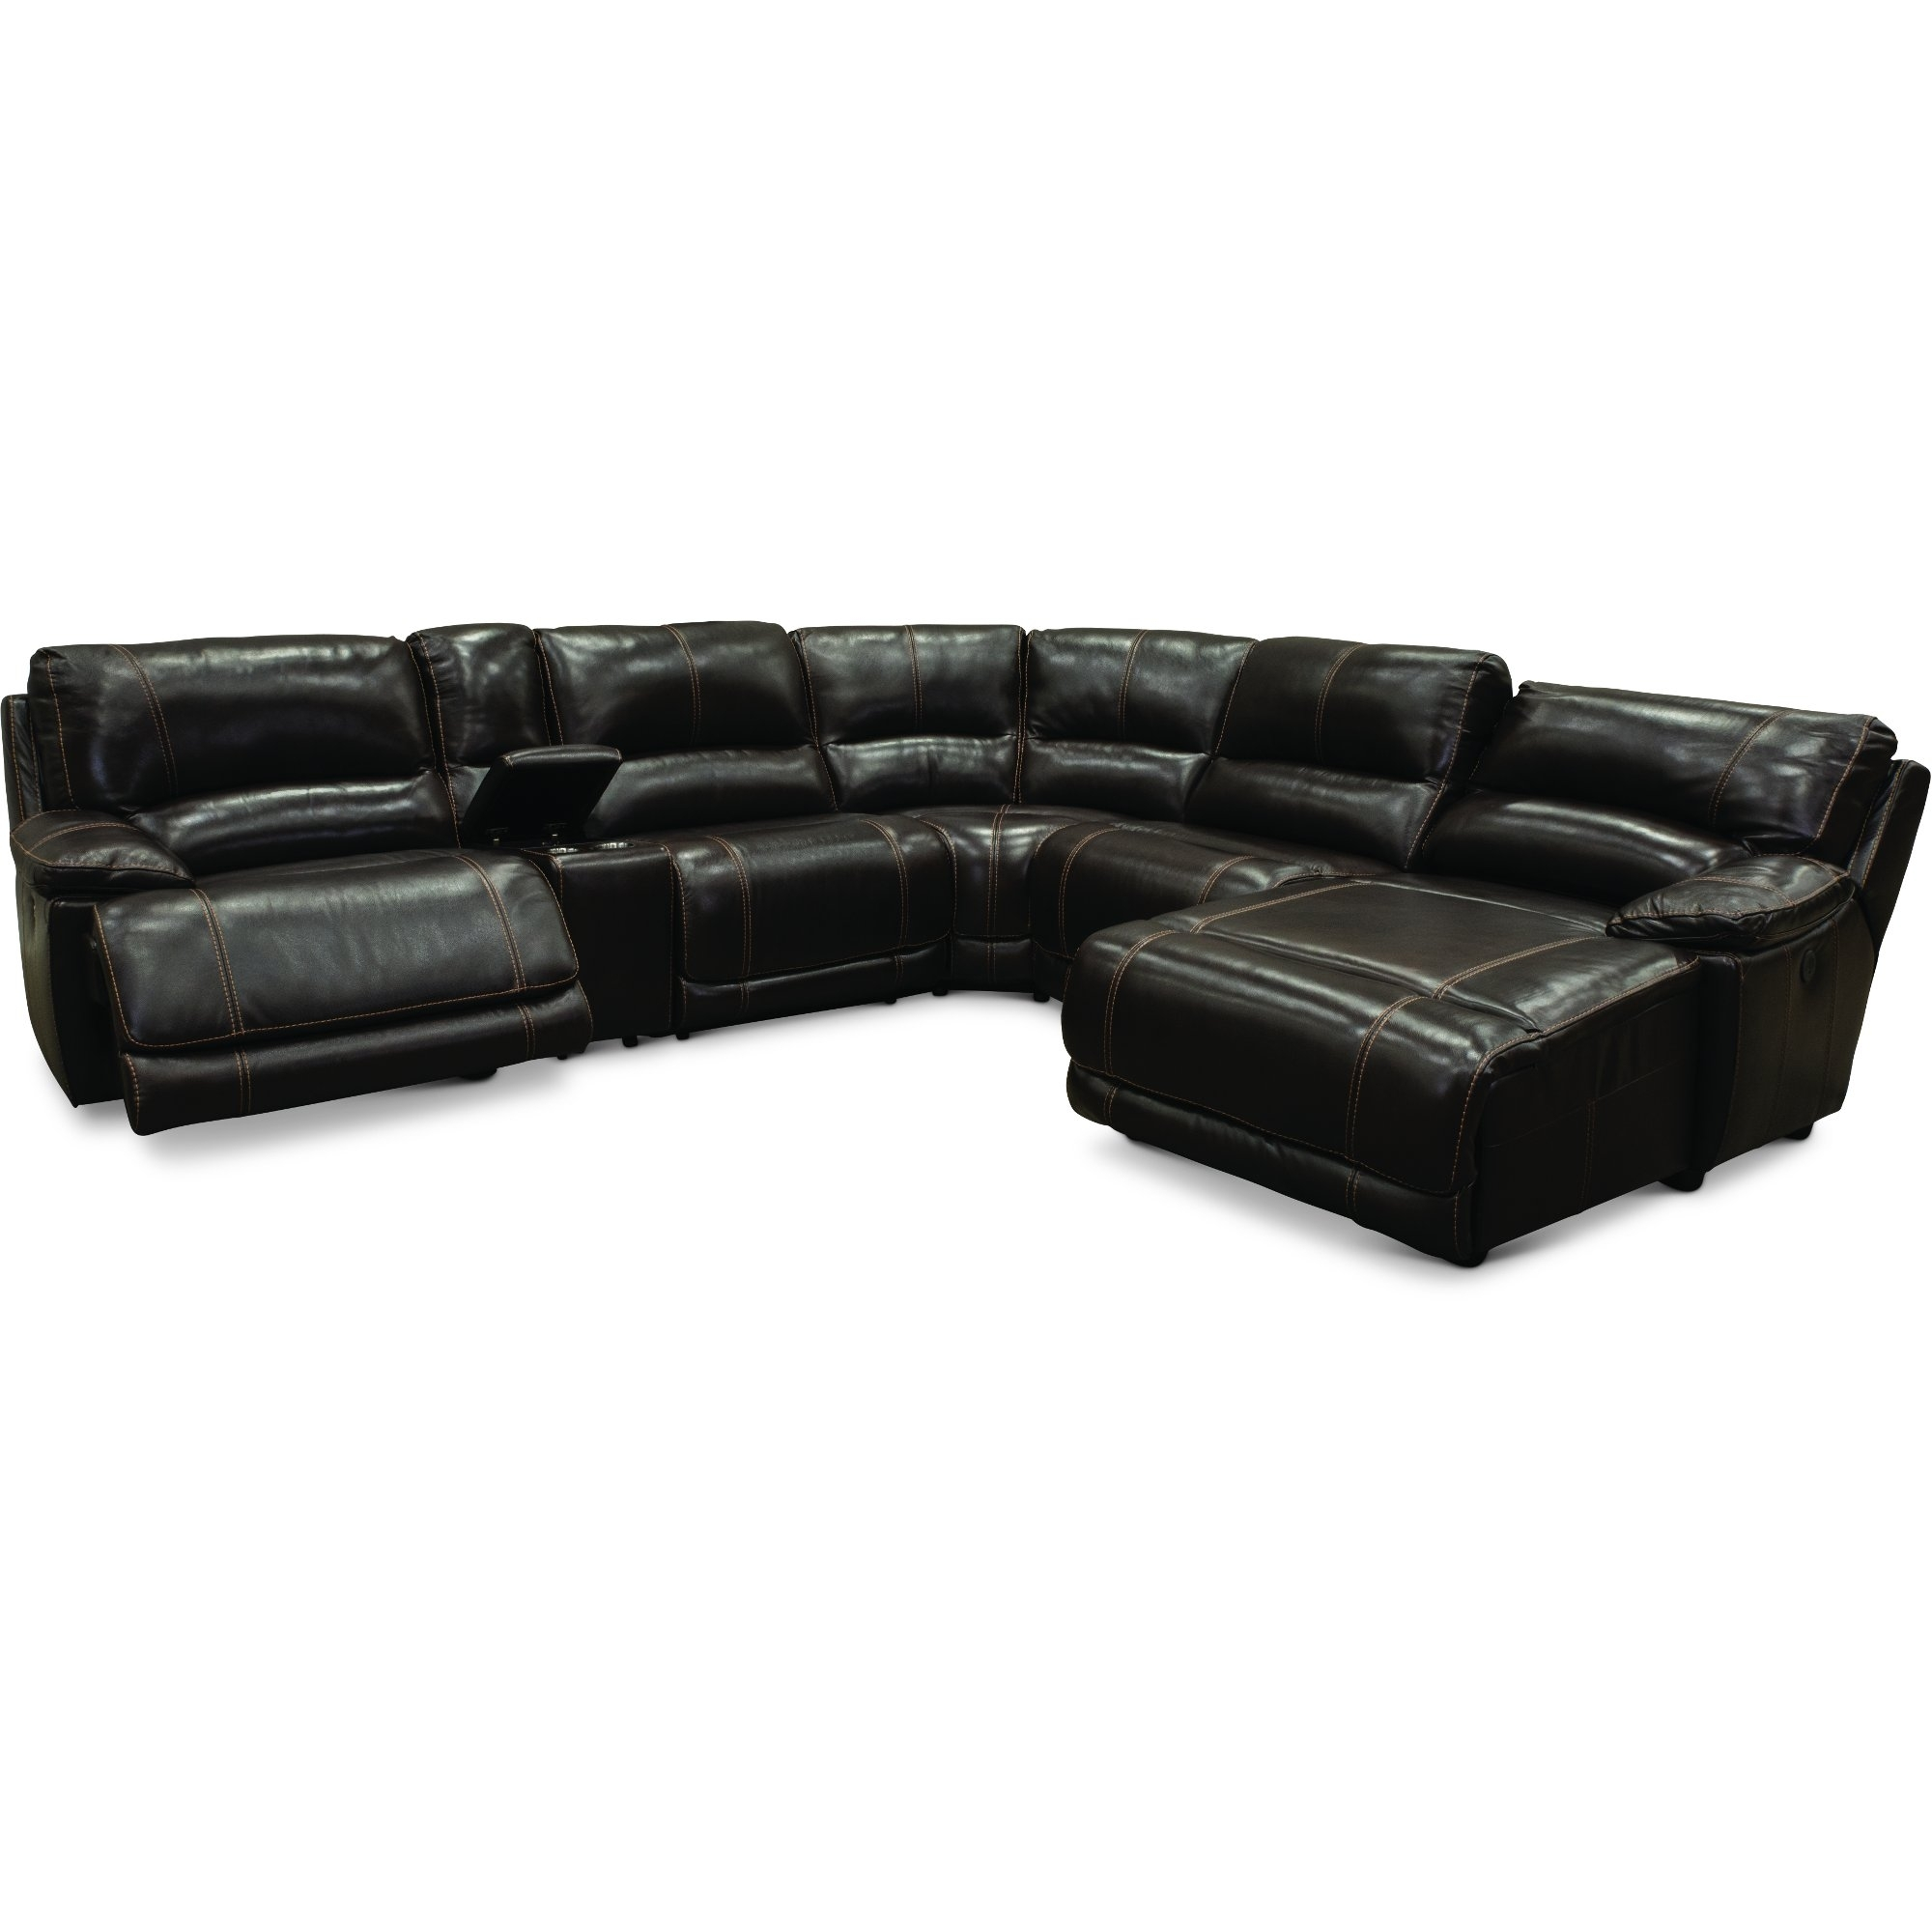 Brown 6 Piece Power Reclining Sectional Sofa – Brant   Rc Willey Throughout Denali Charcoal Grey 6 Piece Reclining Sectionals With 2 Power Headrests (Image 6 of 25)